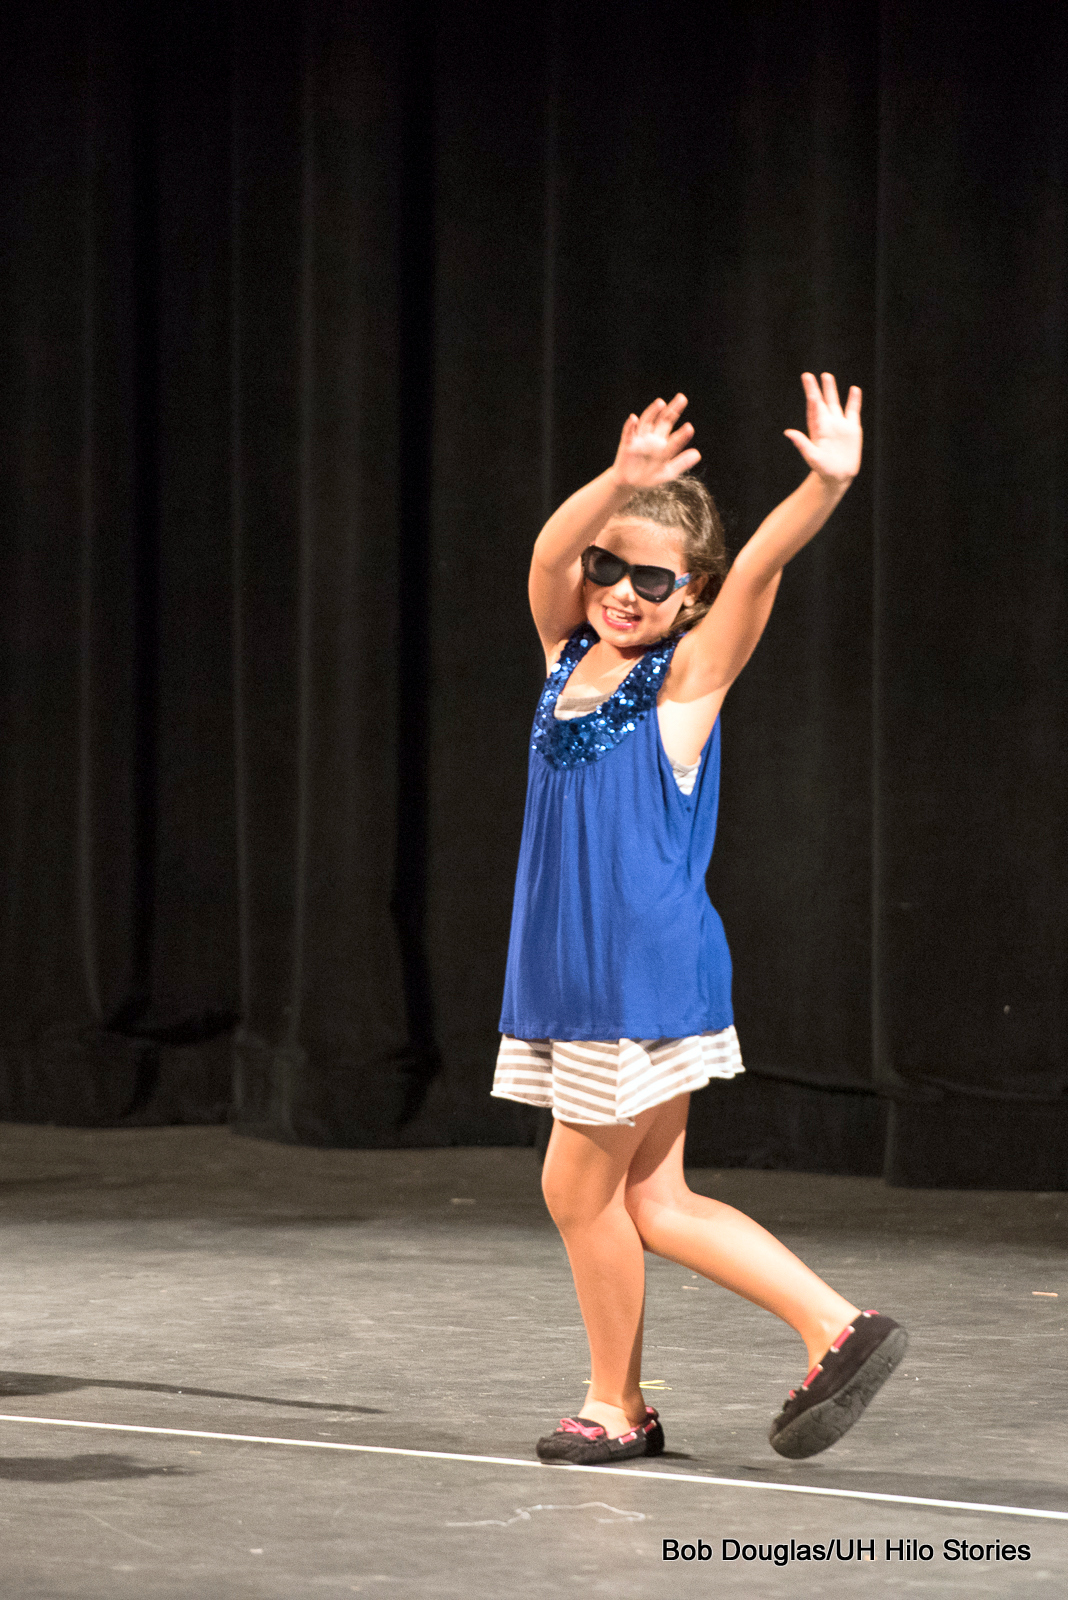 Girl in sunglasses, dancing, arms up.